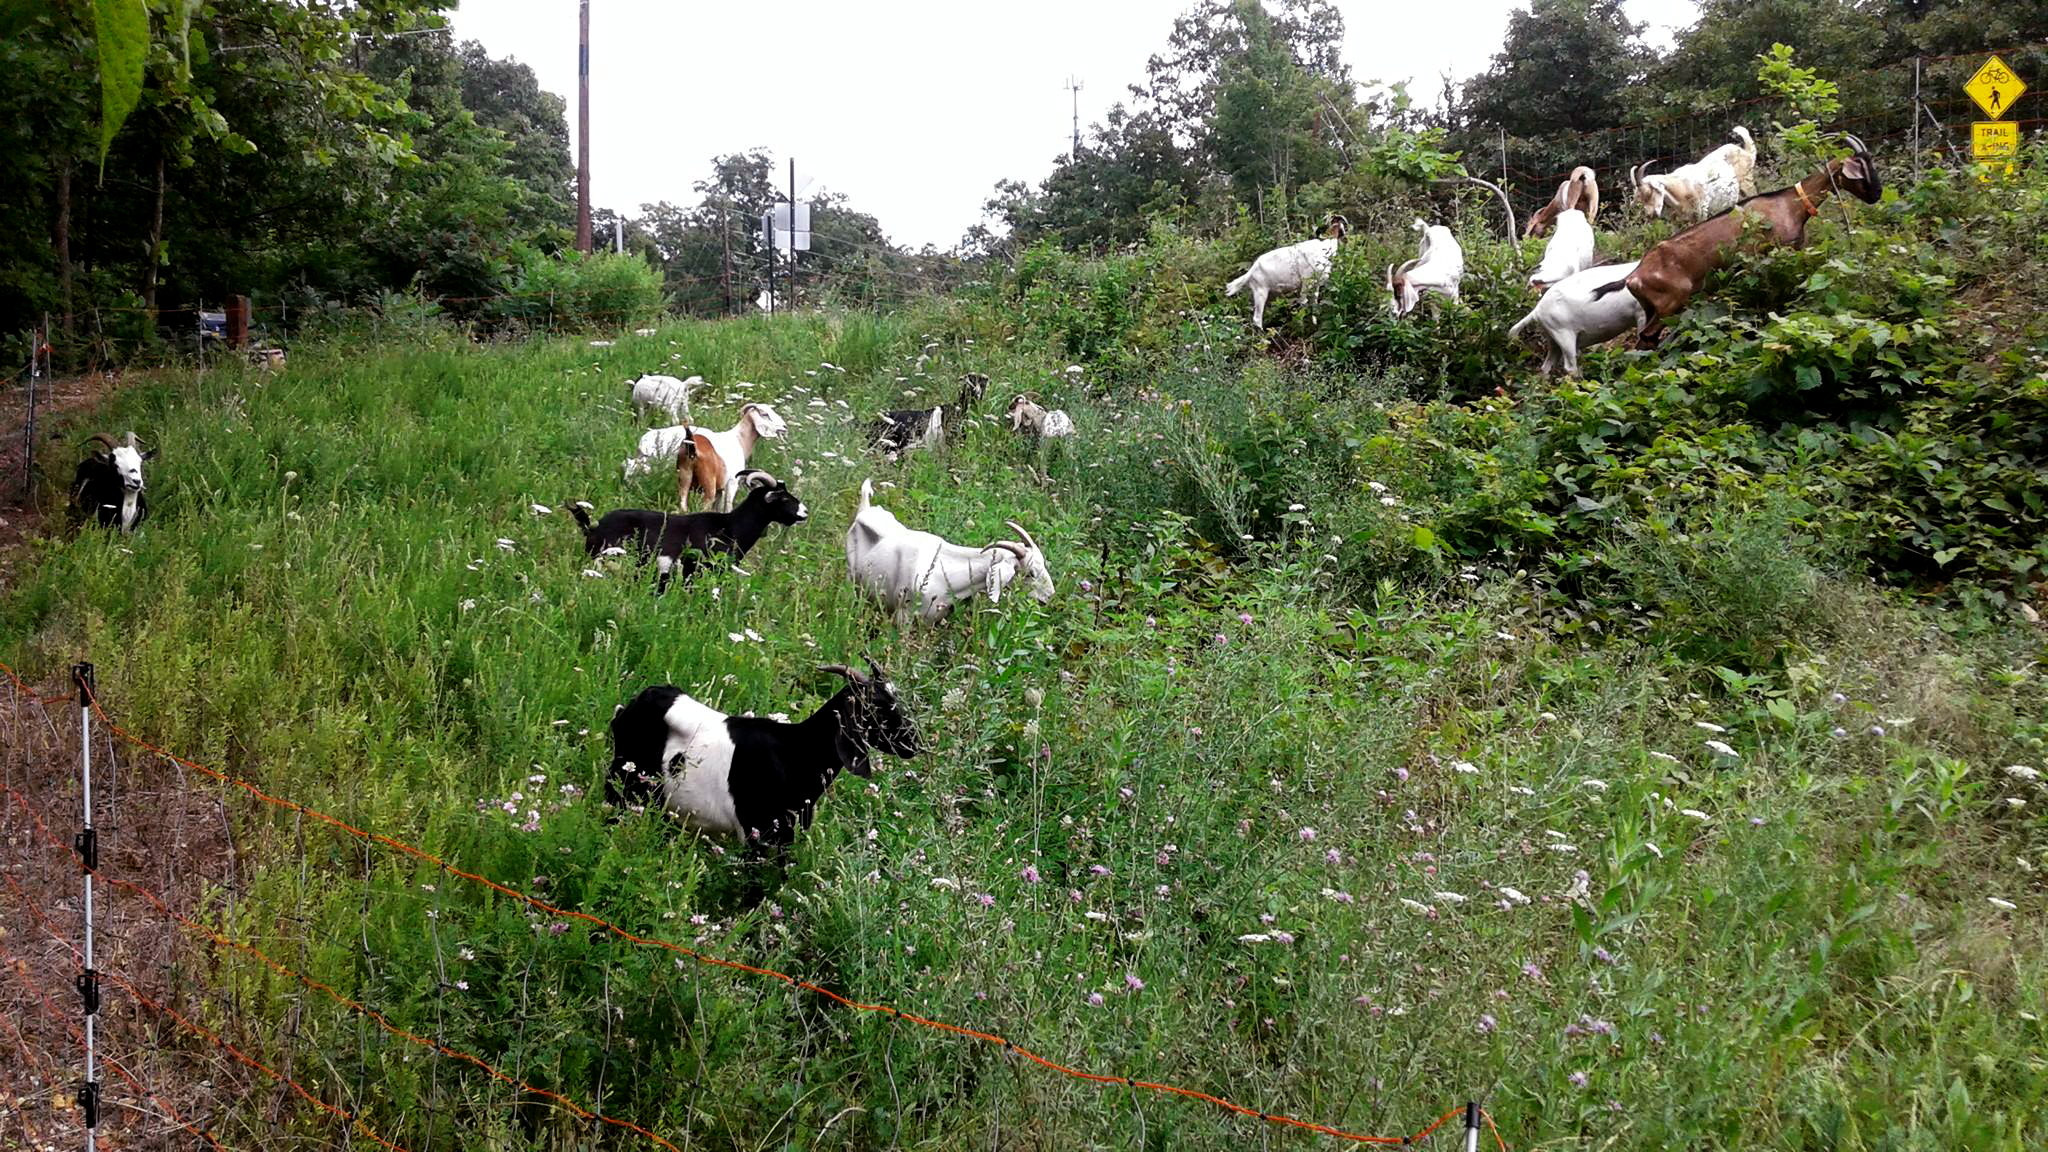 The Best Way To Remove Invasive Species? Greedy Goats